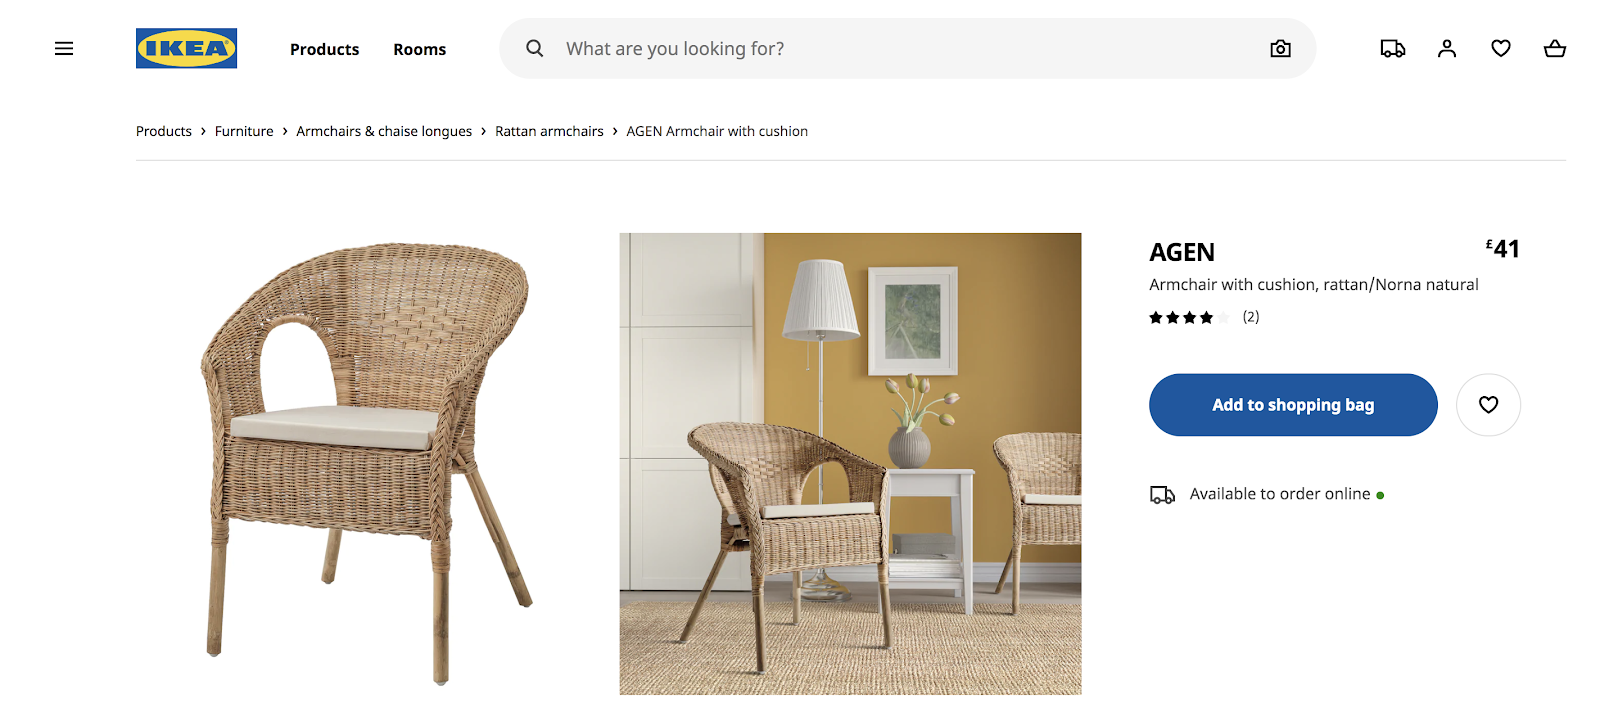 Ikea-product-page